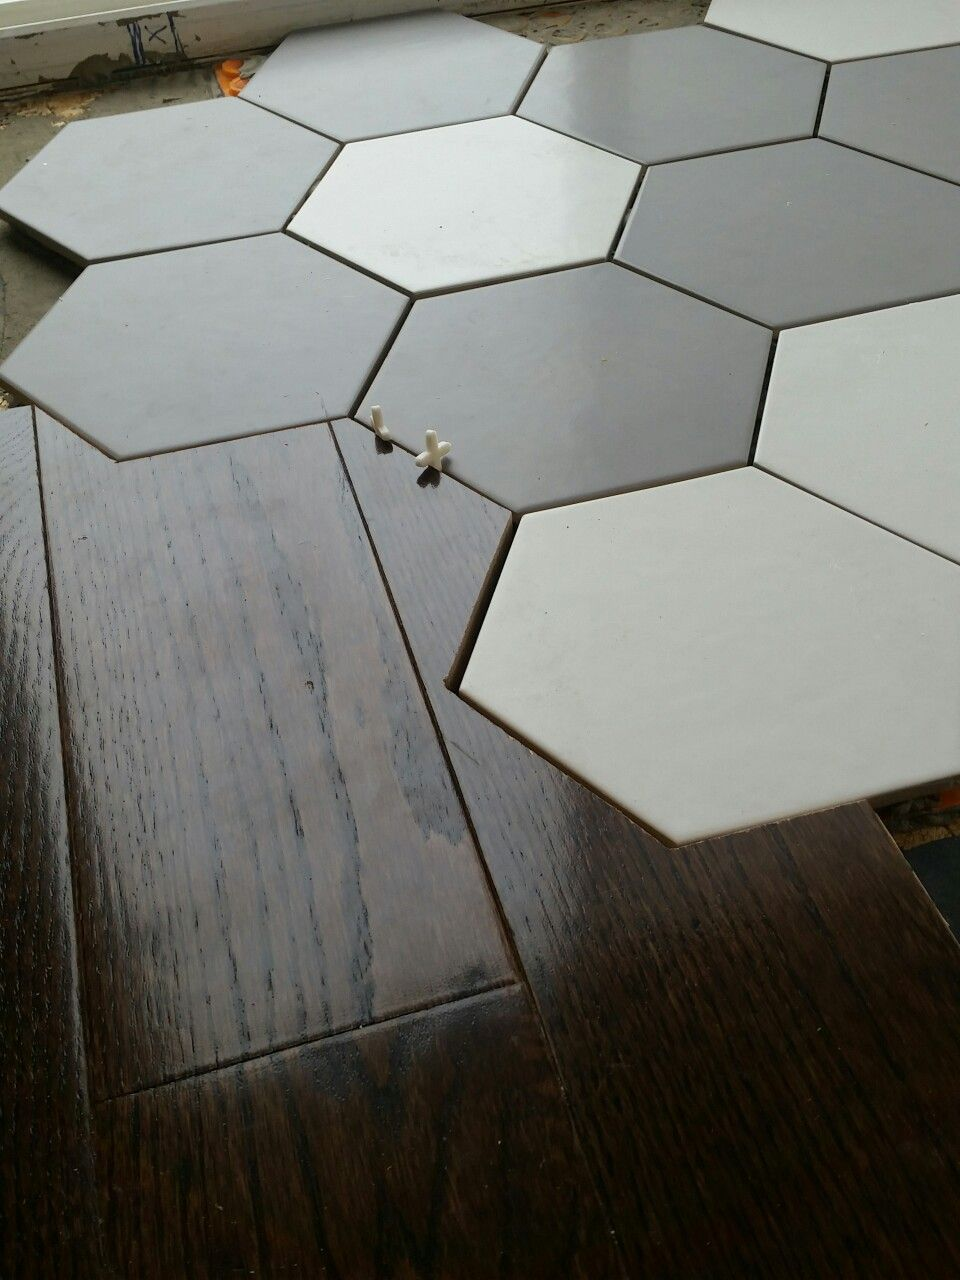 My Kitchen Floor Install I Used A Hexagonal Tile And Made My Hardwood Blend Into It Flooring House Flooring Kitchen Flooring